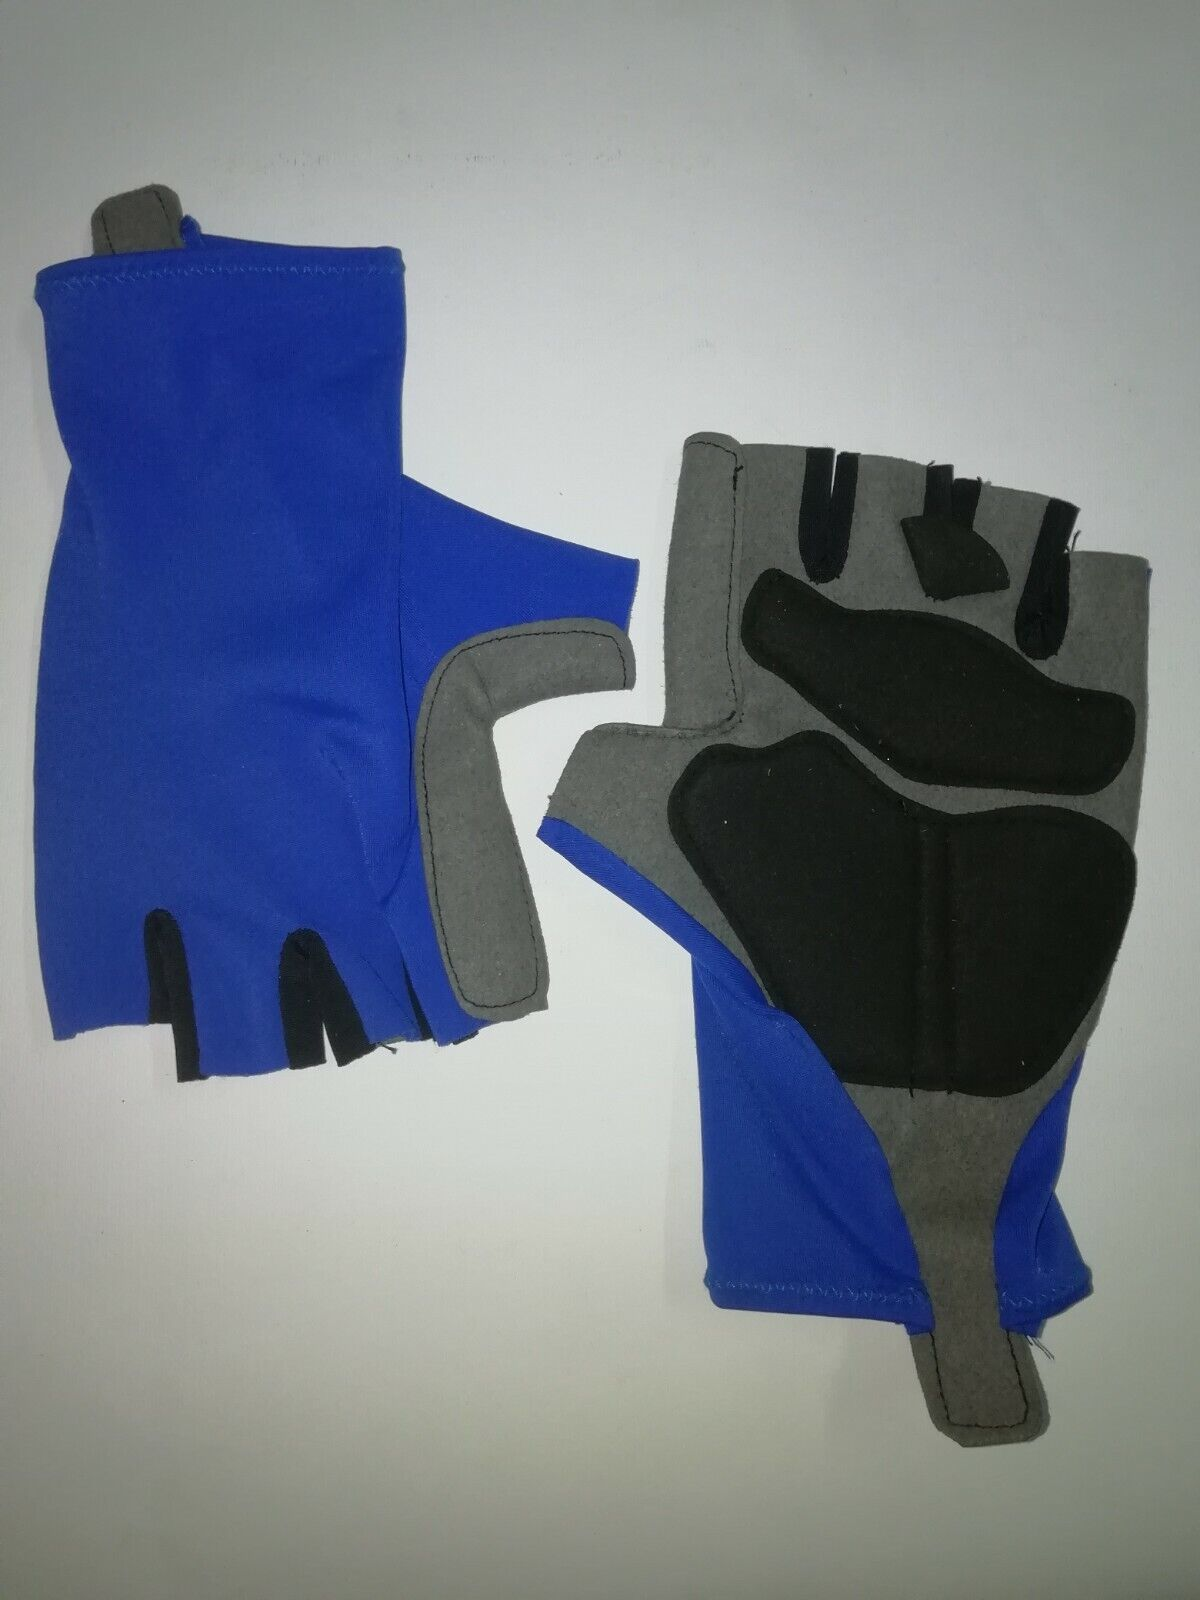 GUANTI CICLISMO BICICLETTA DA CORSA SPINNING BLU CYCLING GLOVES BLUE NEW L